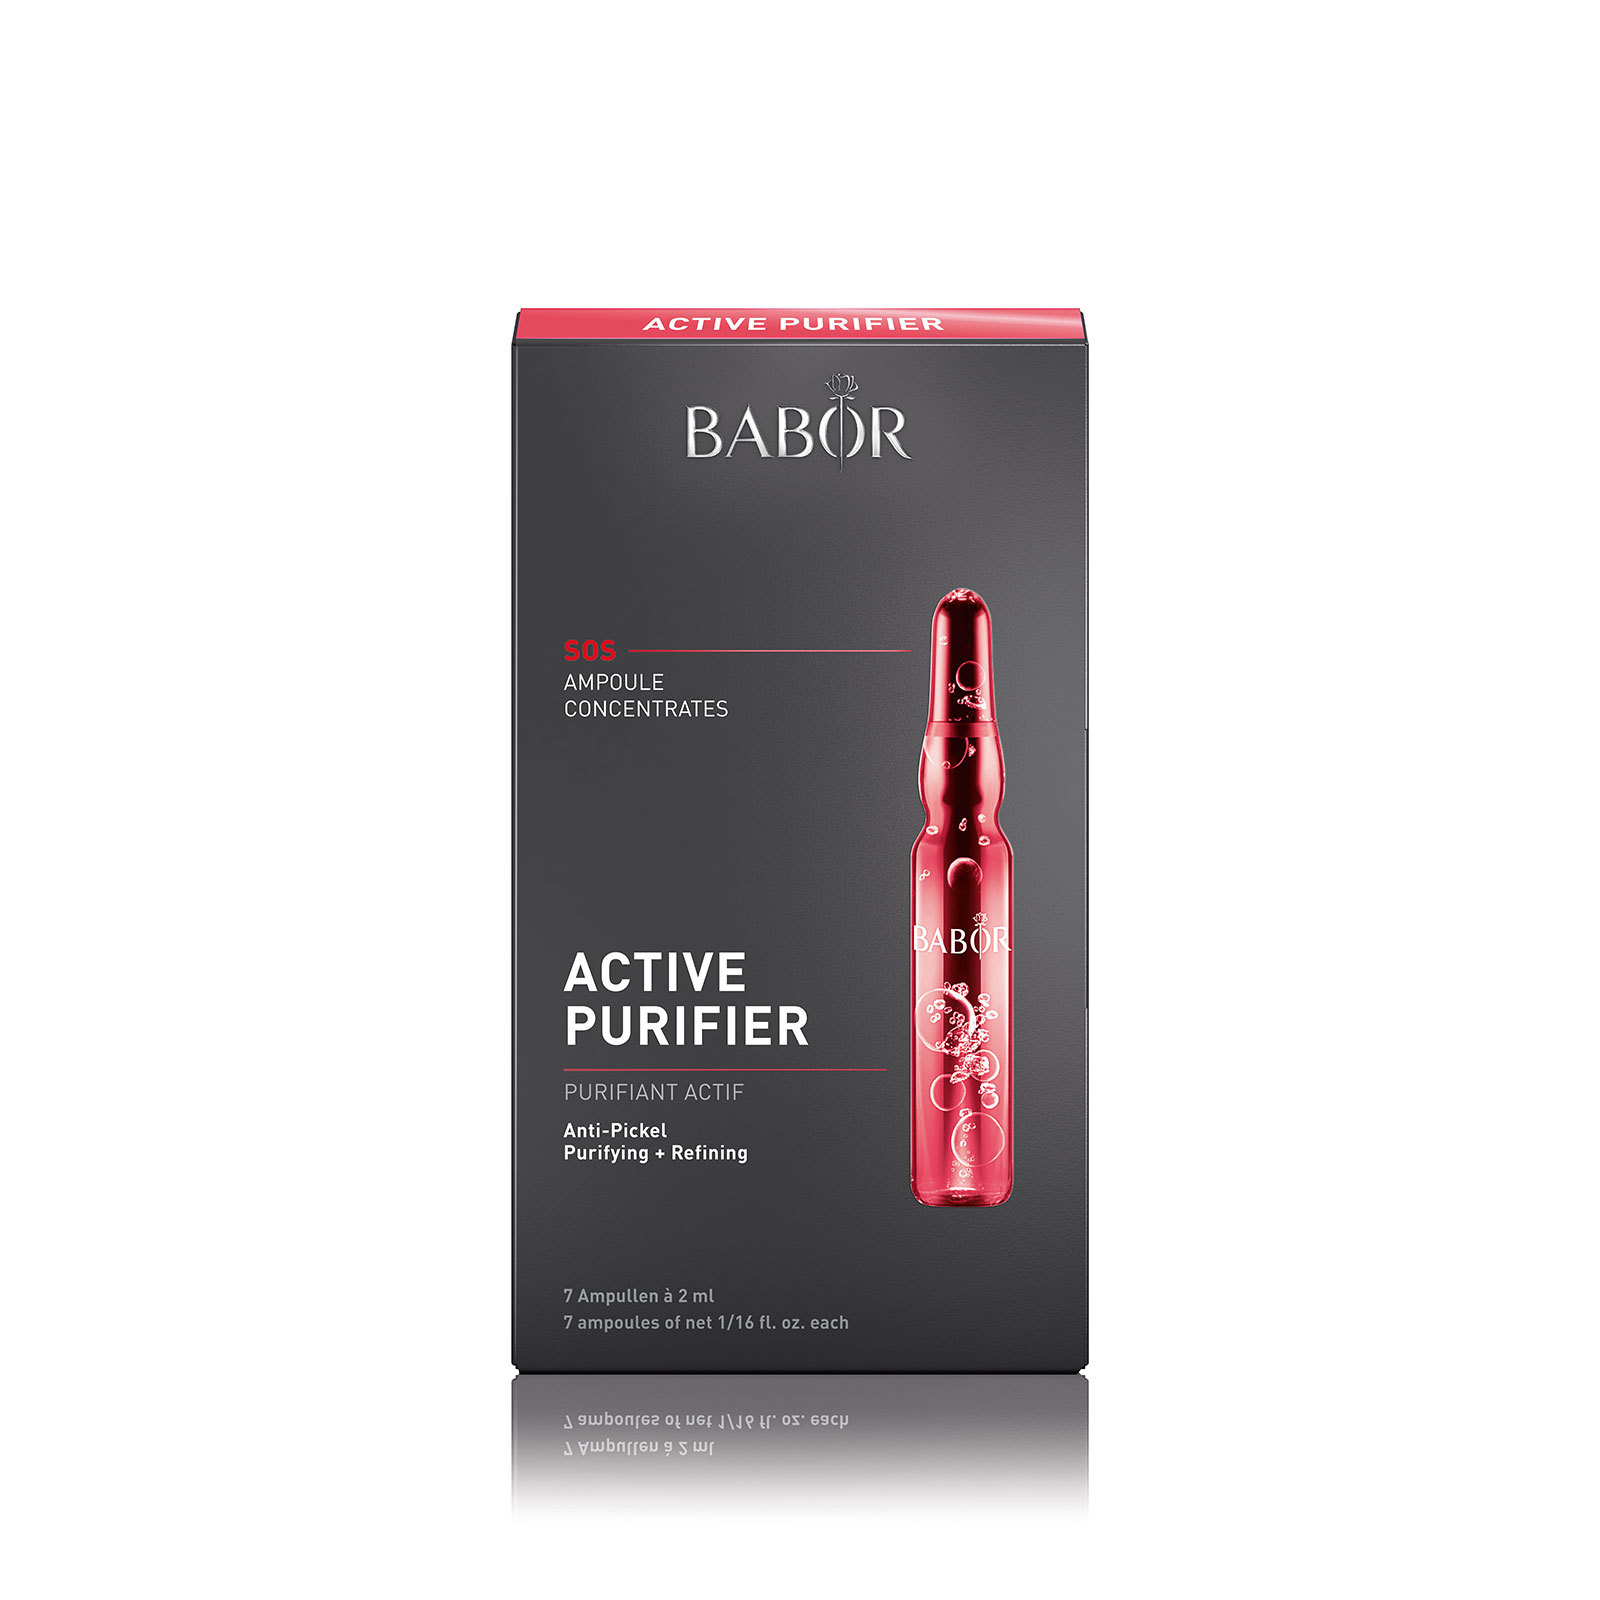 Набор Ampoule Babor Active Purifier 14ml